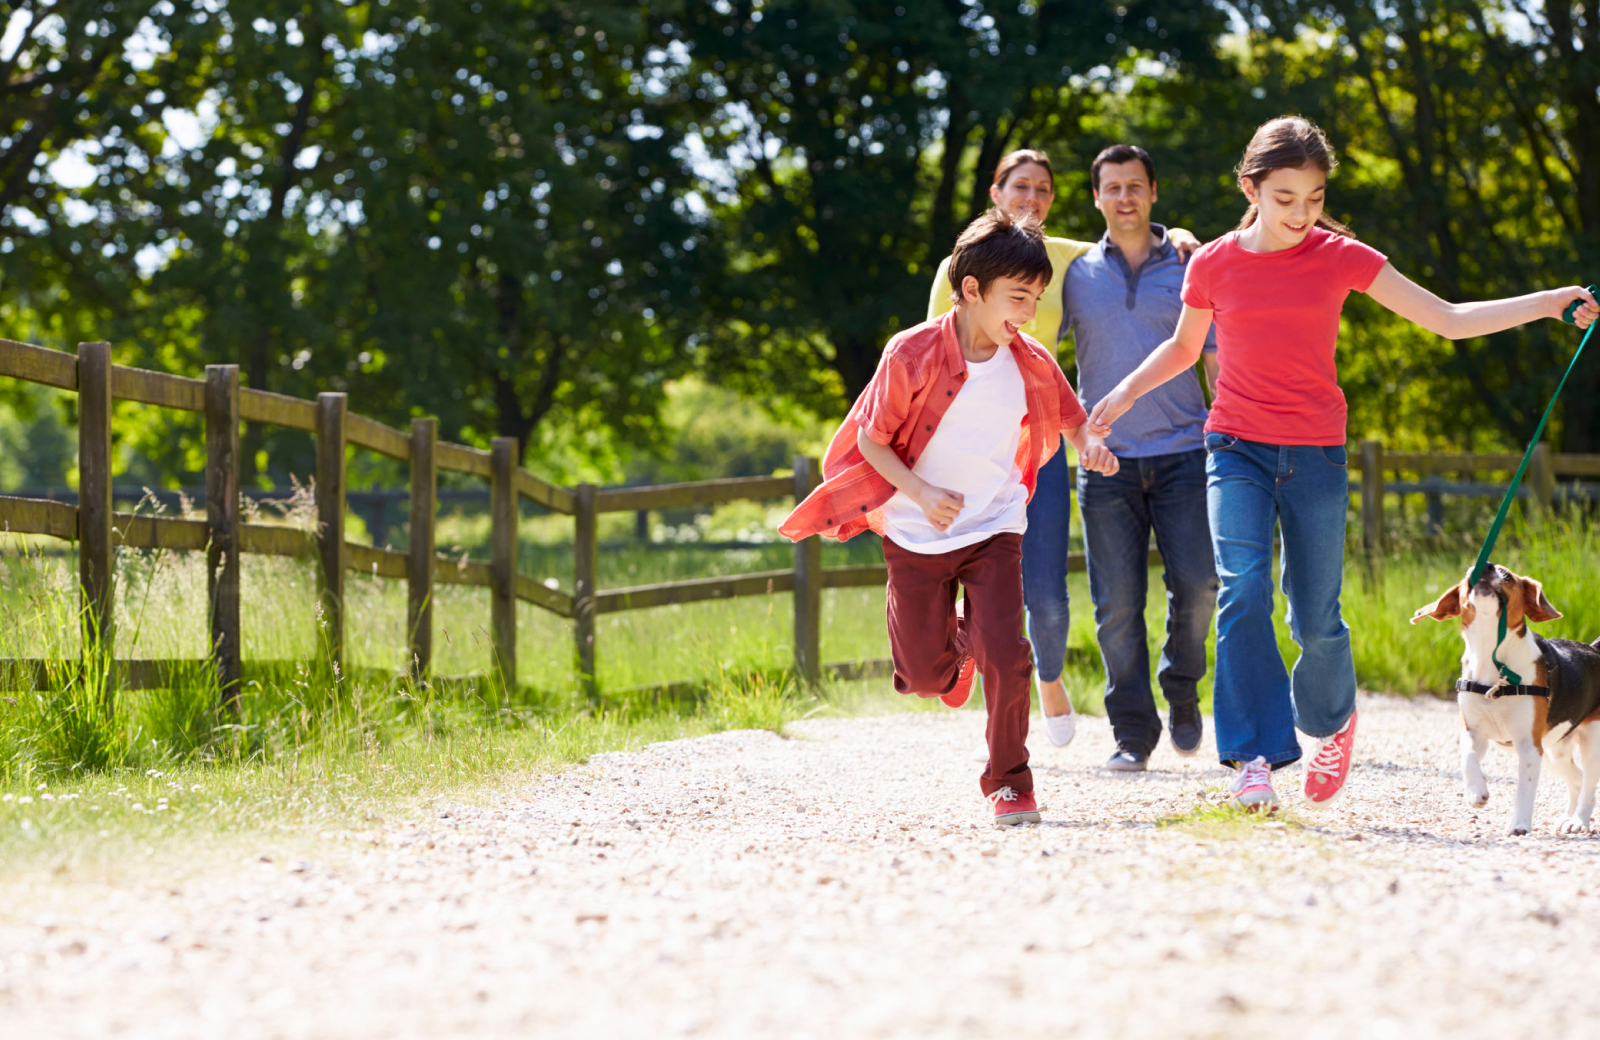 3 Reasons Why Pleasanton Is One of the Best Places for Families to Live